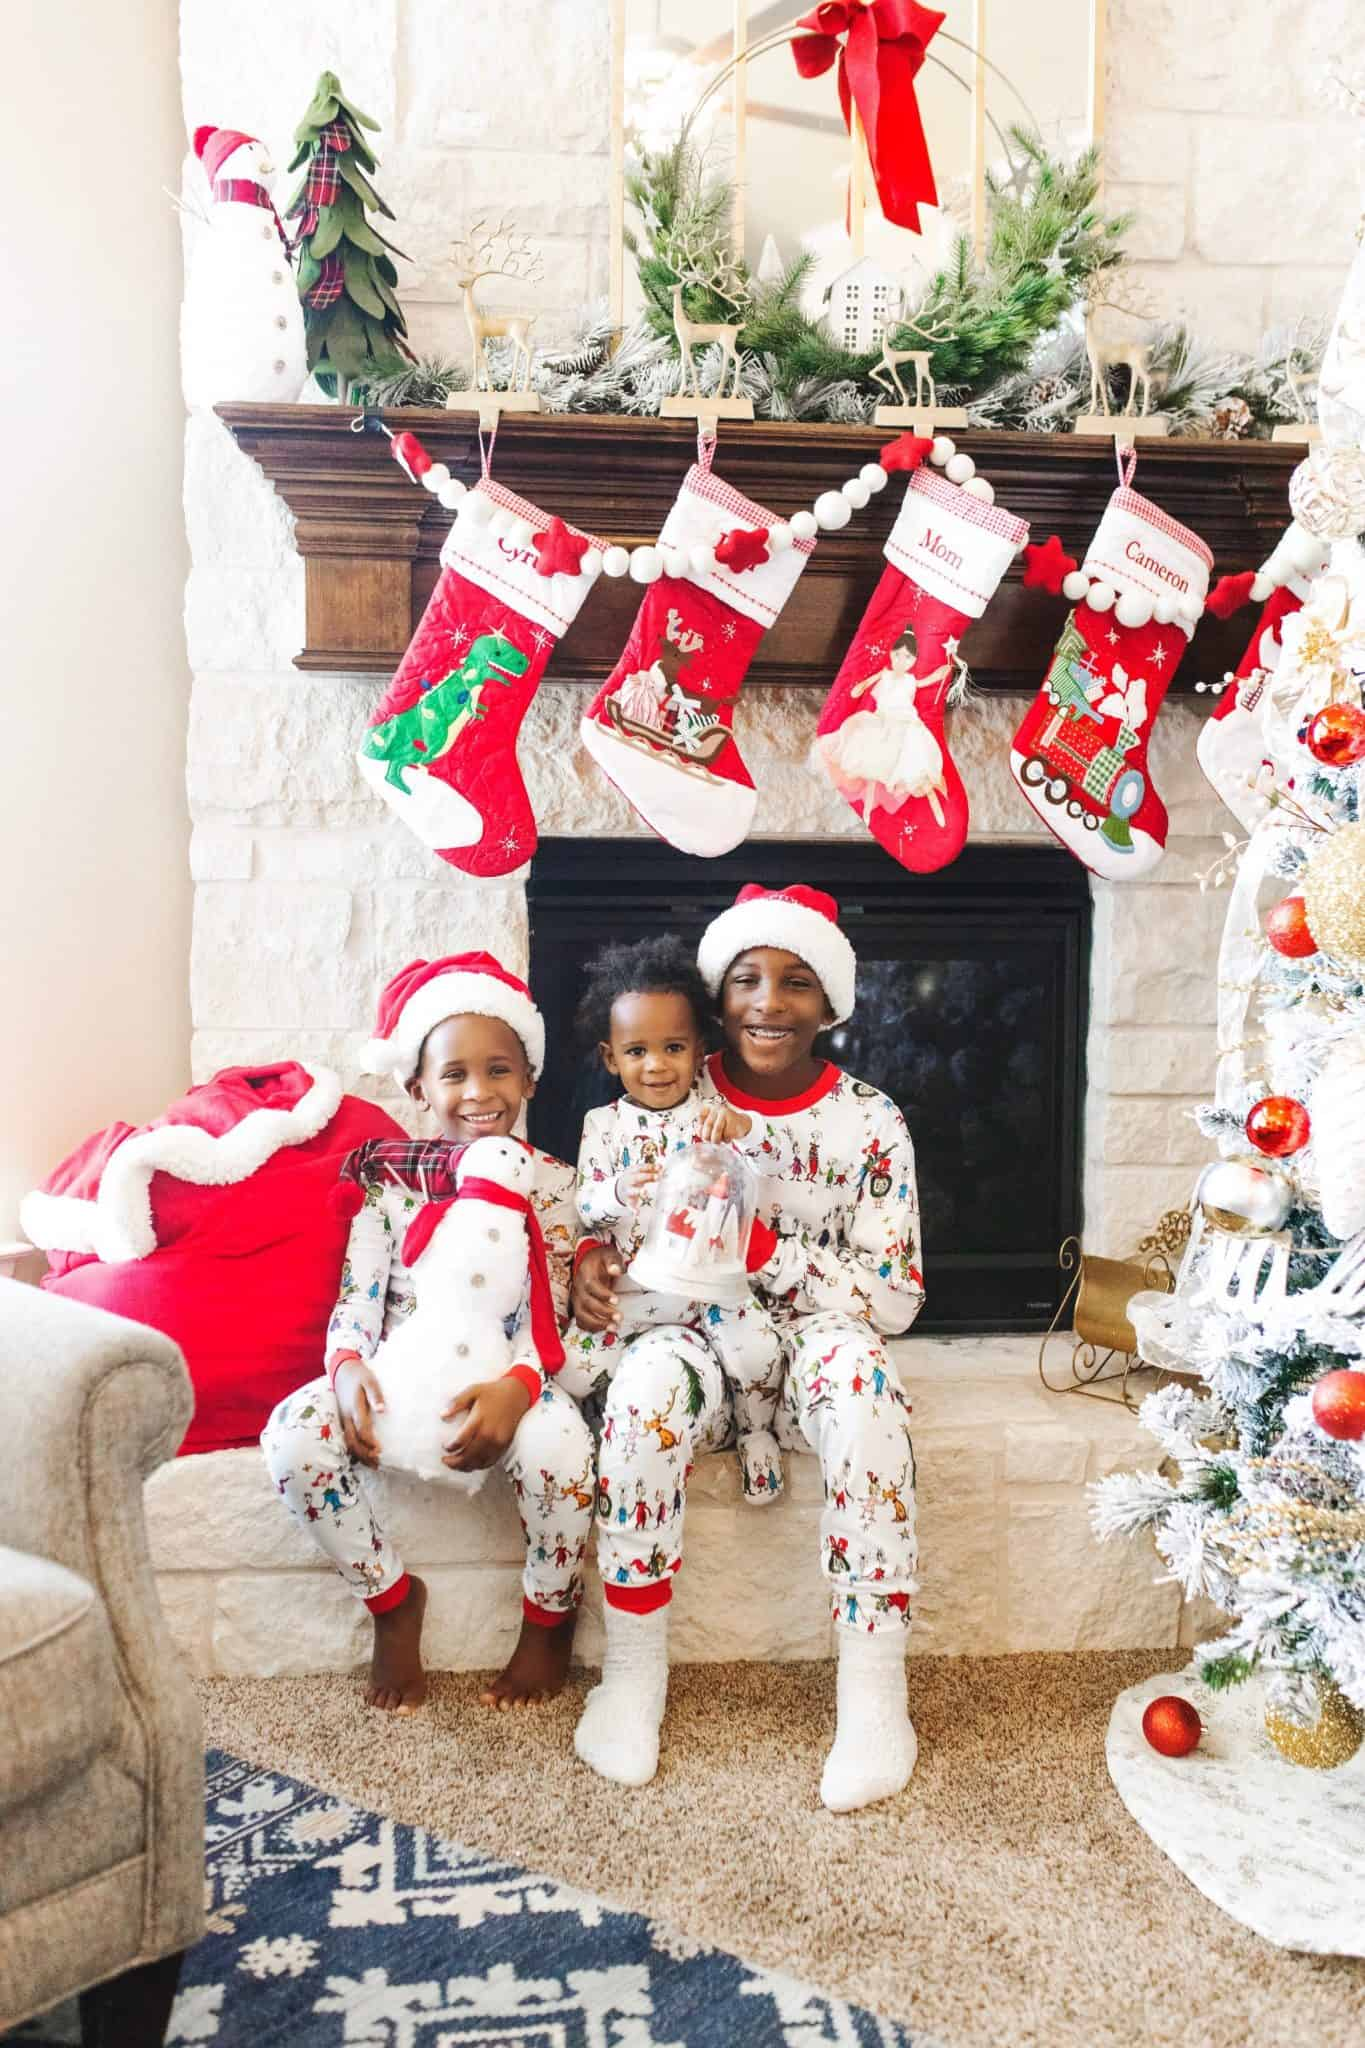 A Pottery Barn Kids Christmas by popular life and style blog, Glamorous Versatility: image of three boys wearing Pottery Barn Kids grinch pajamas and sitting in their living room that's decorated with Pottery Barn Brown Hair Fairy Quilted Stocking, Pottery Barn Kids Woodland Christmas Advent Calendar, Pottery Barn Kids Red Fleece Santa Bags, Pottery Barn Kids Frosted Pine Cone Garland, Pottery Barn Kids Light Up LED Glitter House Decor, Pottery Barn Kids Plaid Felt Wreath Decor, and Pottery Barn Kids Merry Christmas Glitter Garland.